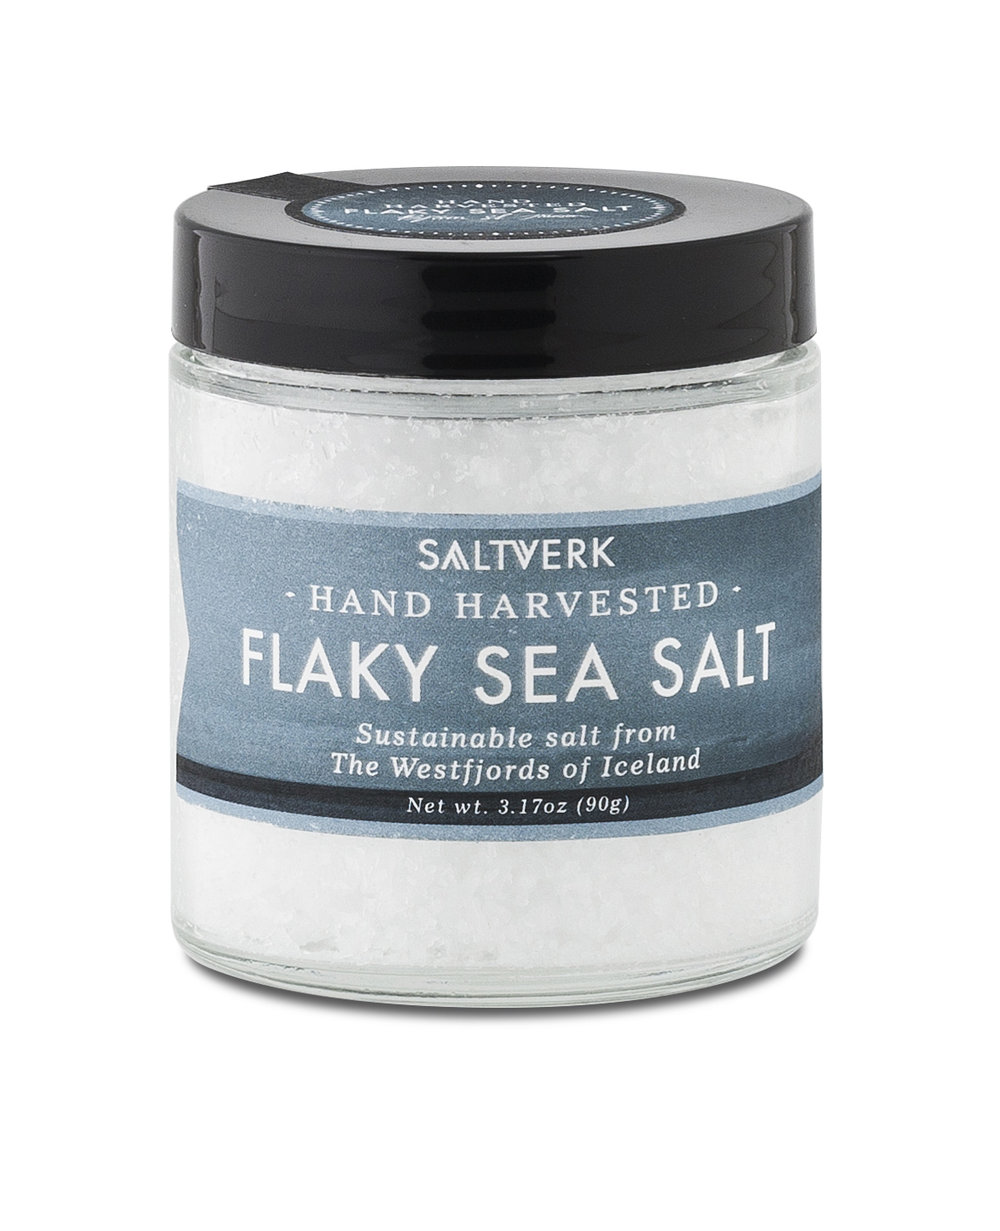 Flaky sea salt - $10.99